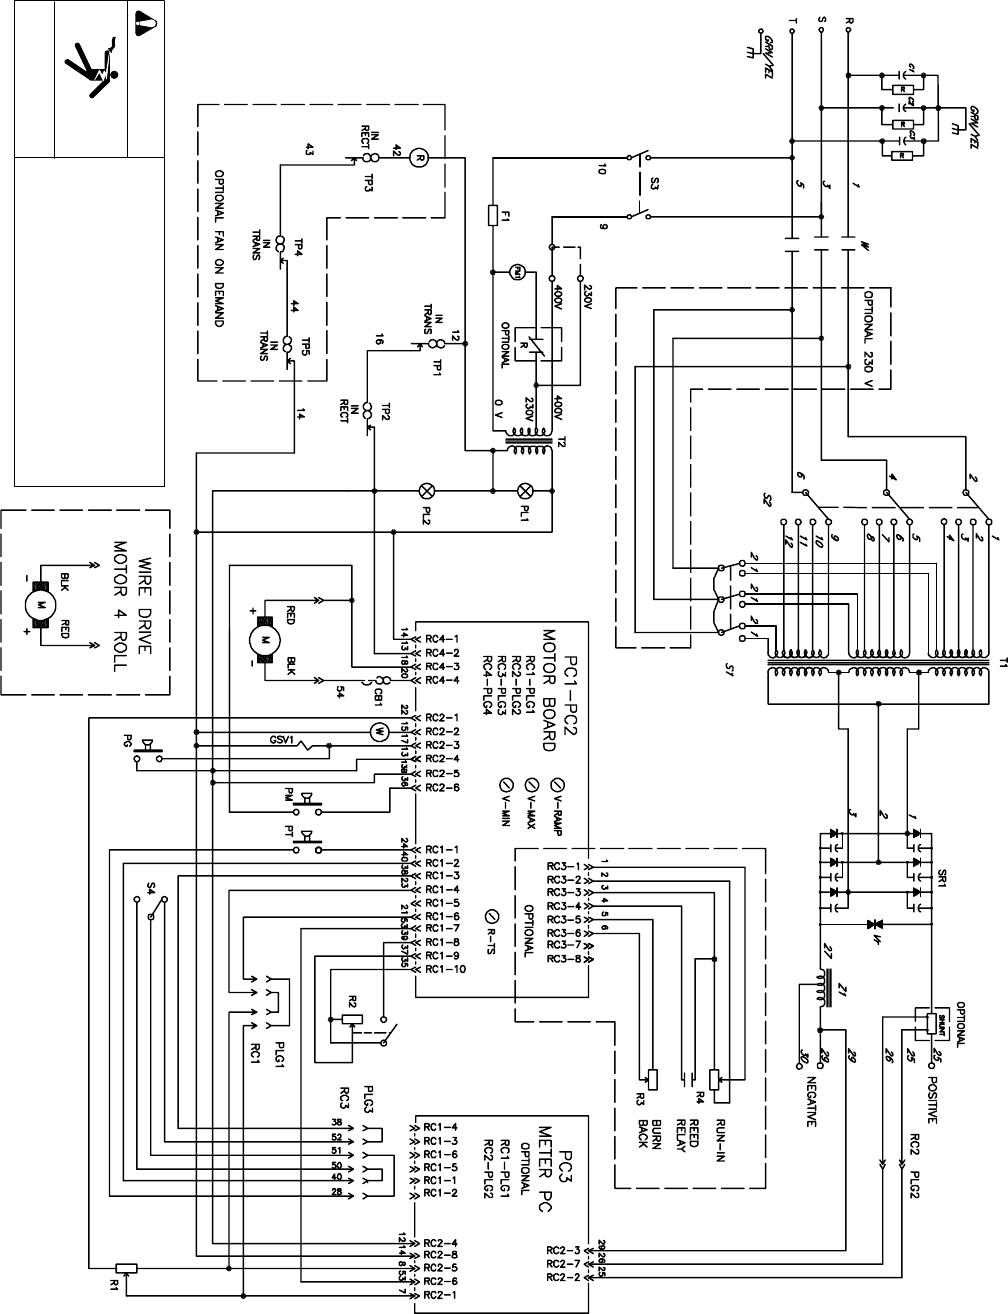 Disremov besides 1985 Chevy 350 Vacuum Hose Routing additionally 2gpm7 Correct Firing Order Dodge Ram 1500 Pickup Truck 5 as well Chevy 383 Truck Engine moreover Vmi Wiring Diagram. on 383 dodge engine diagram